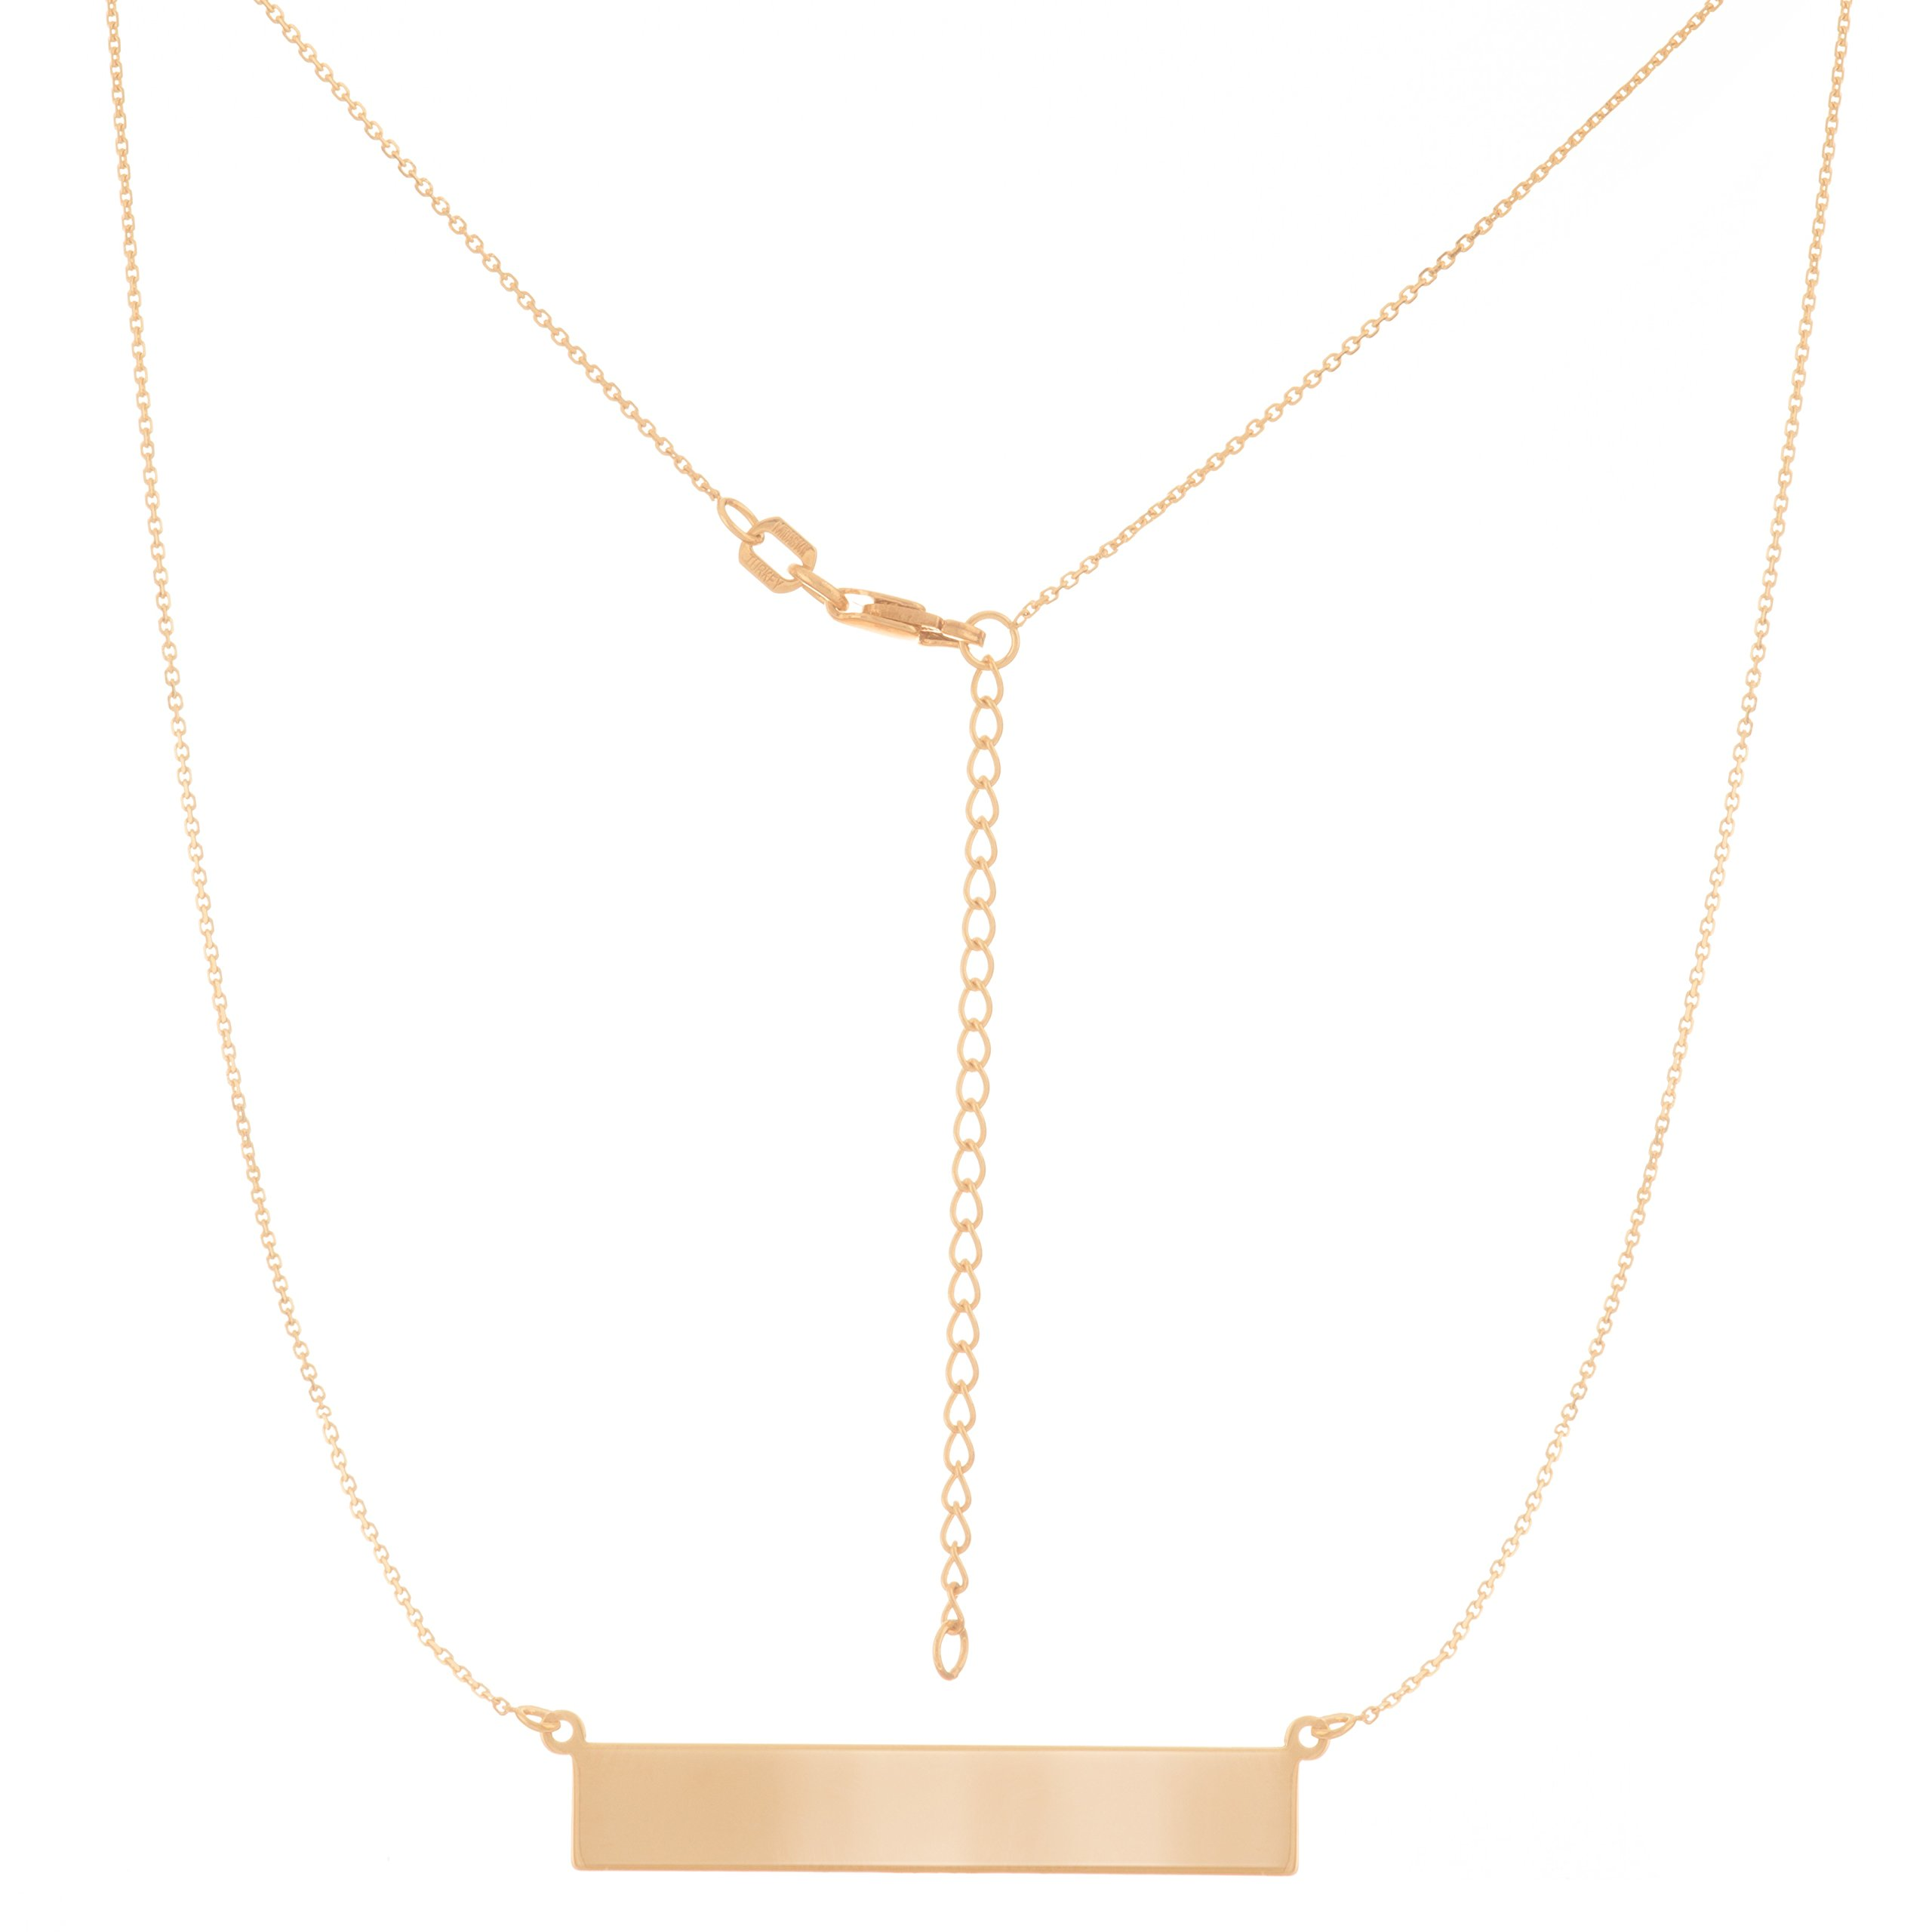 NAME PLATE NECKLACE, 14KT GOLD NAME PLATE NECKLACE 18'' INCHES